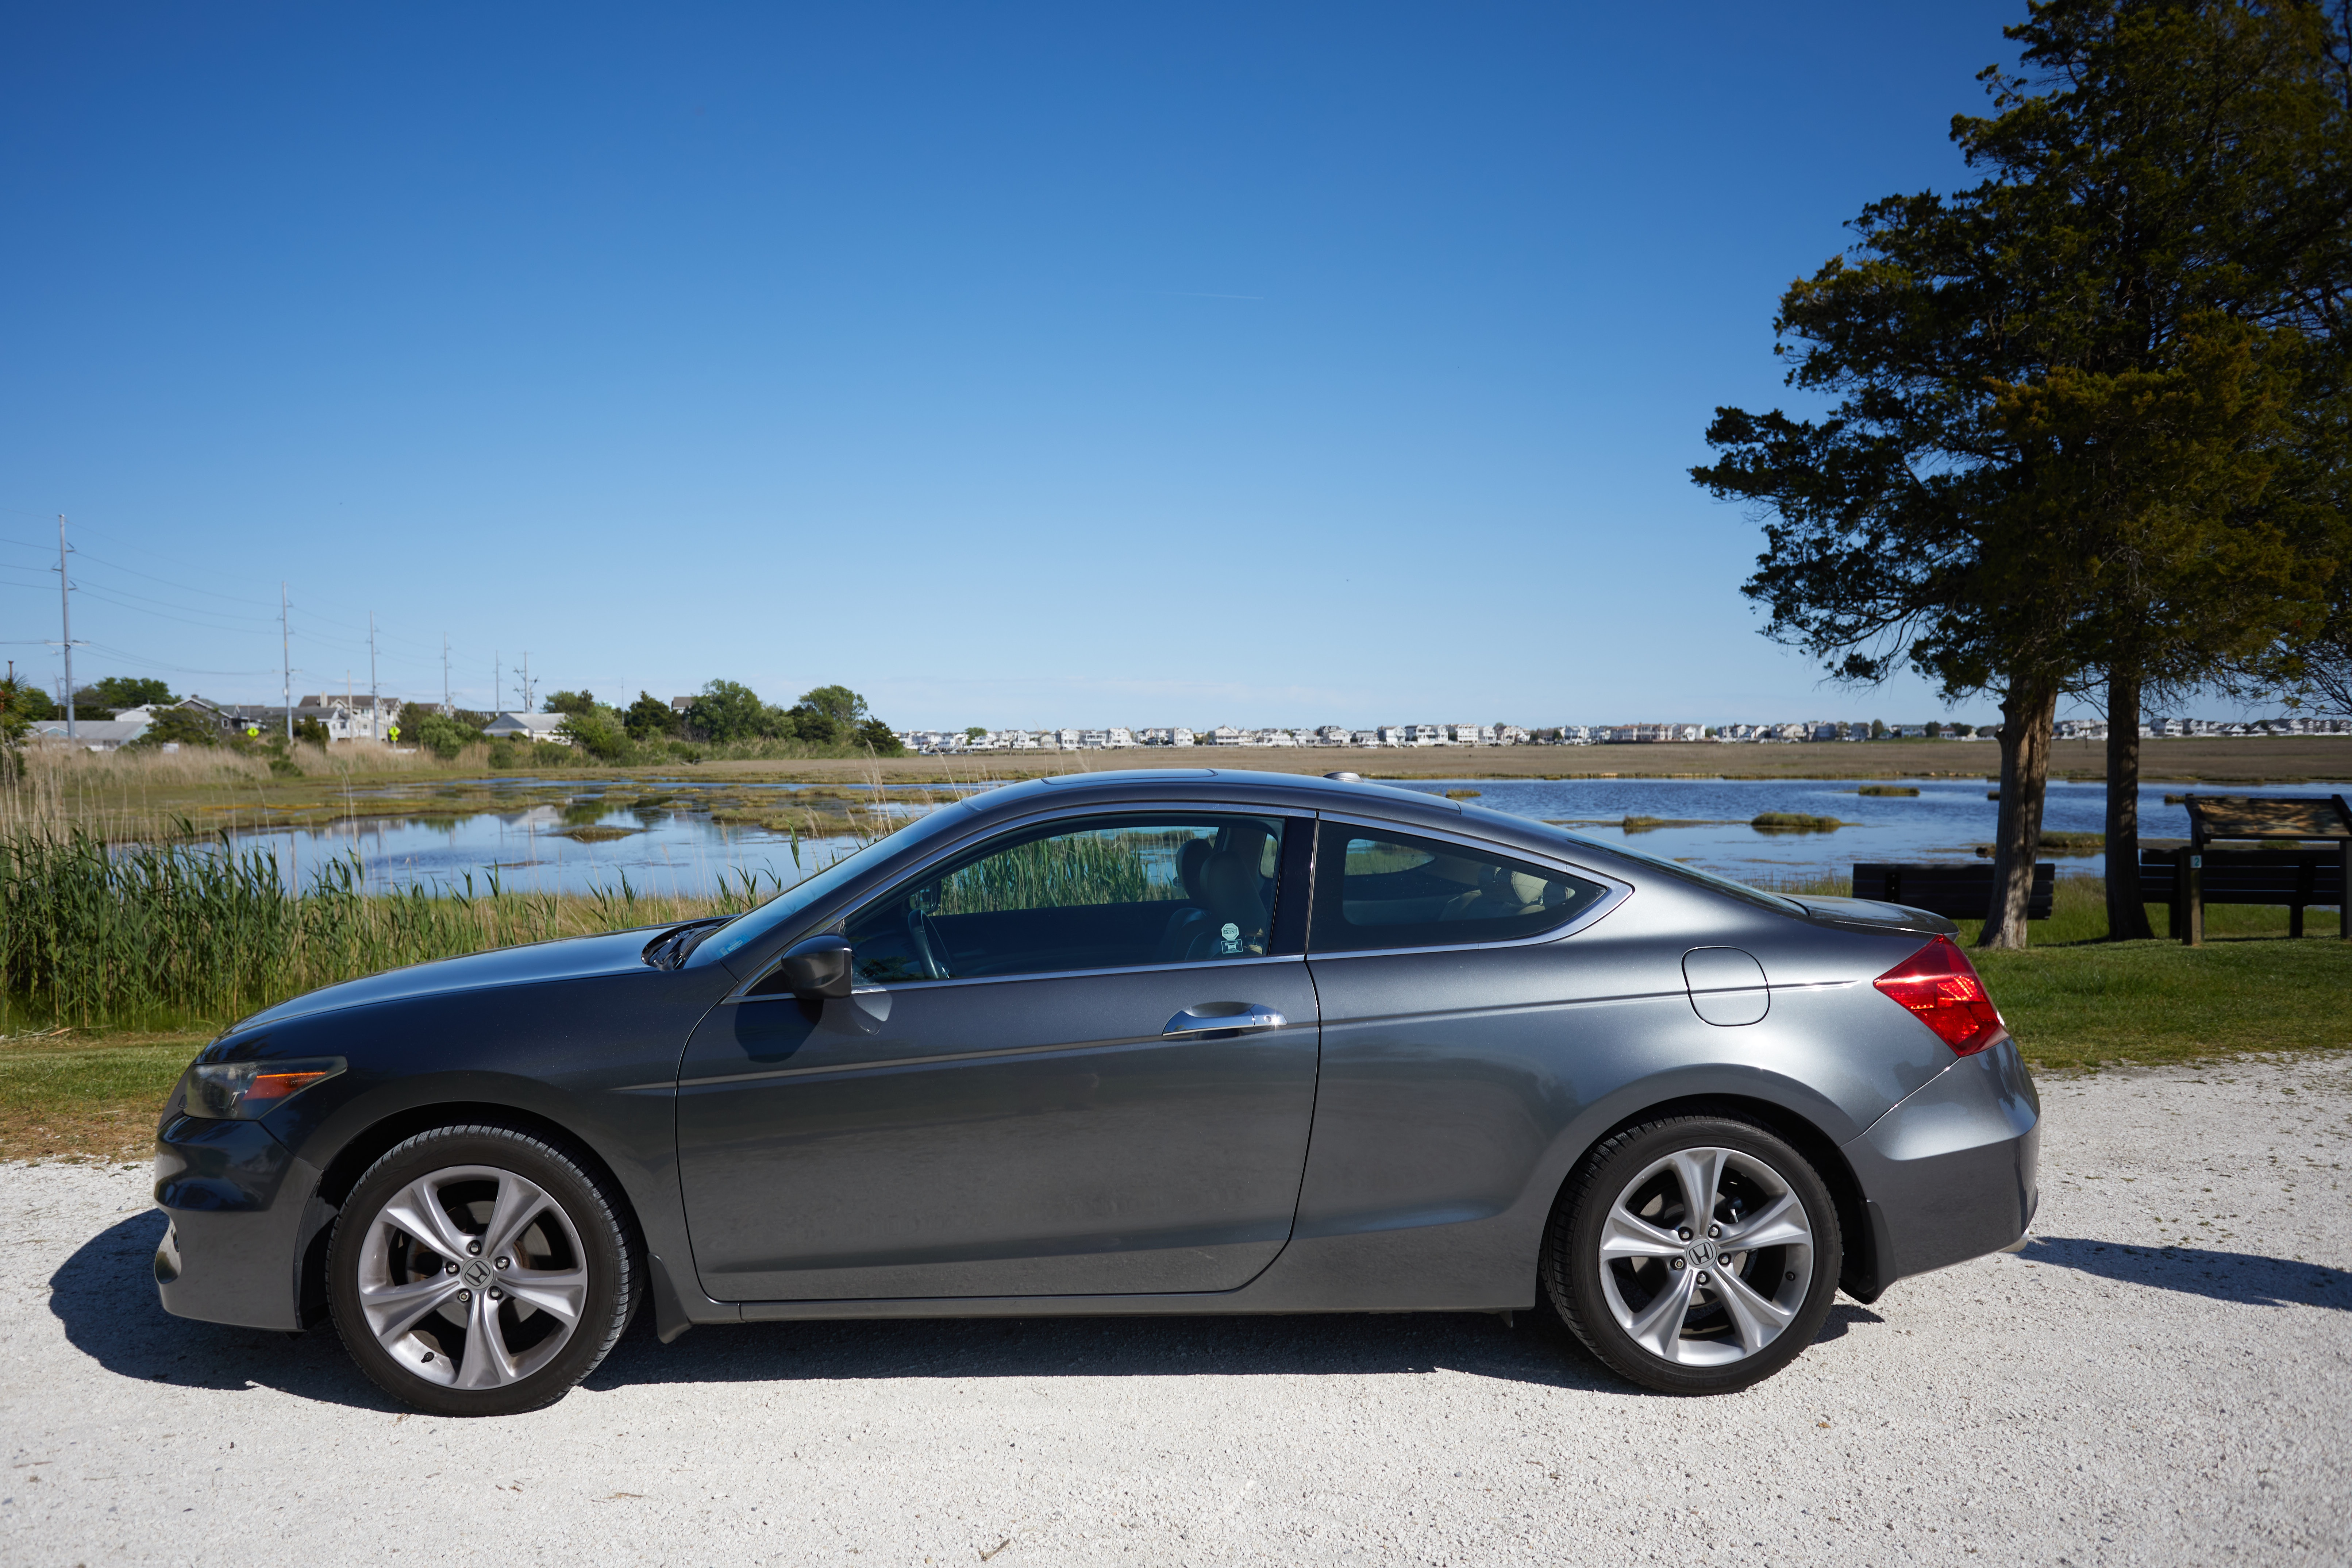 2012 Honda Accord parked in front of marshland at the Wetlands Institute.